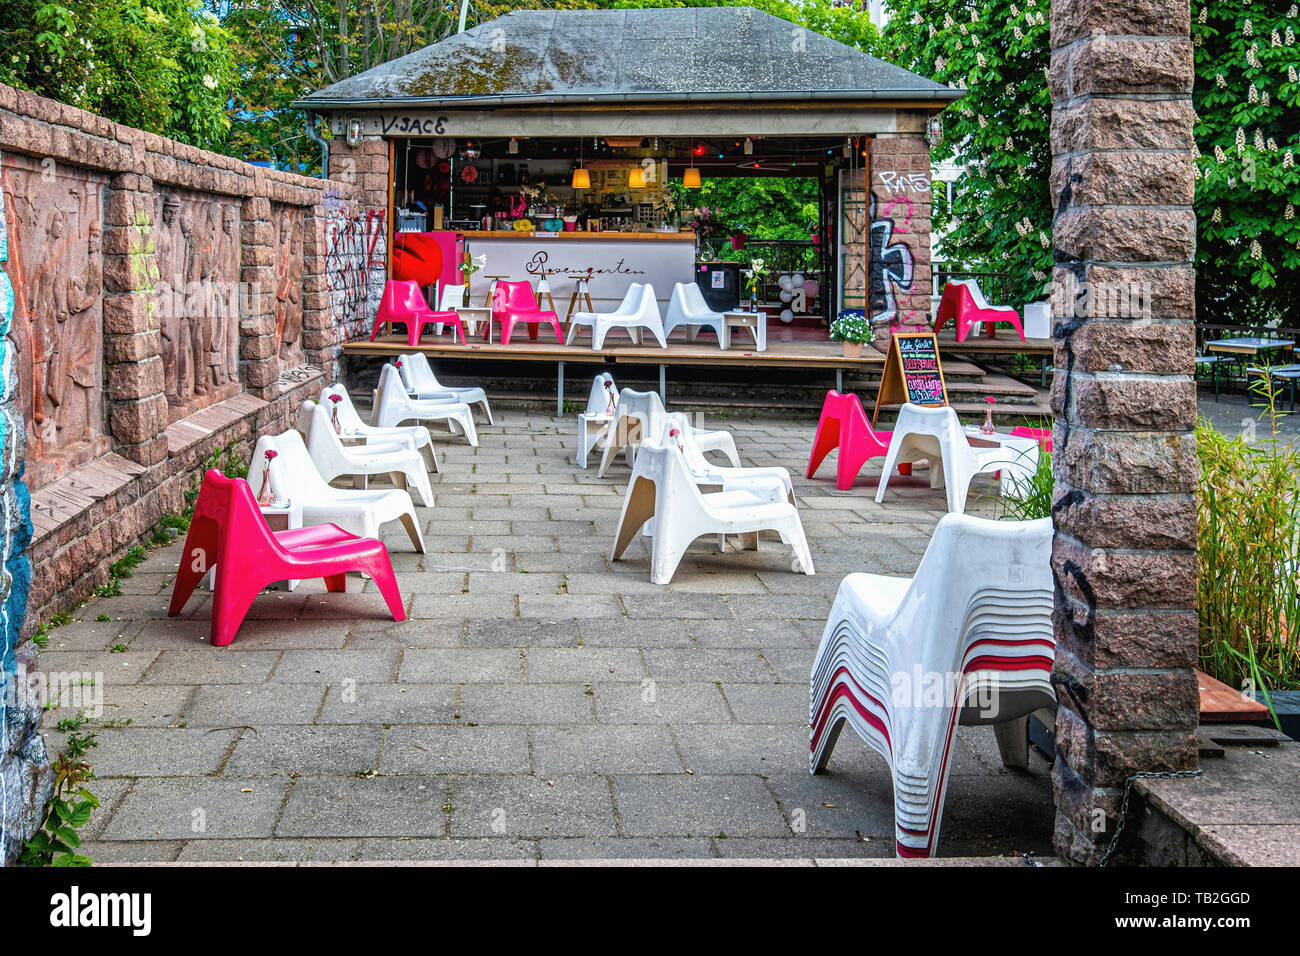 The Rosengarten cafe, Bar and event space in the Volkspark am Winbergsweg park in Mitte Berlin. The rose garden in Volkspark am Weinbergsweg in Berlin Stock Photo